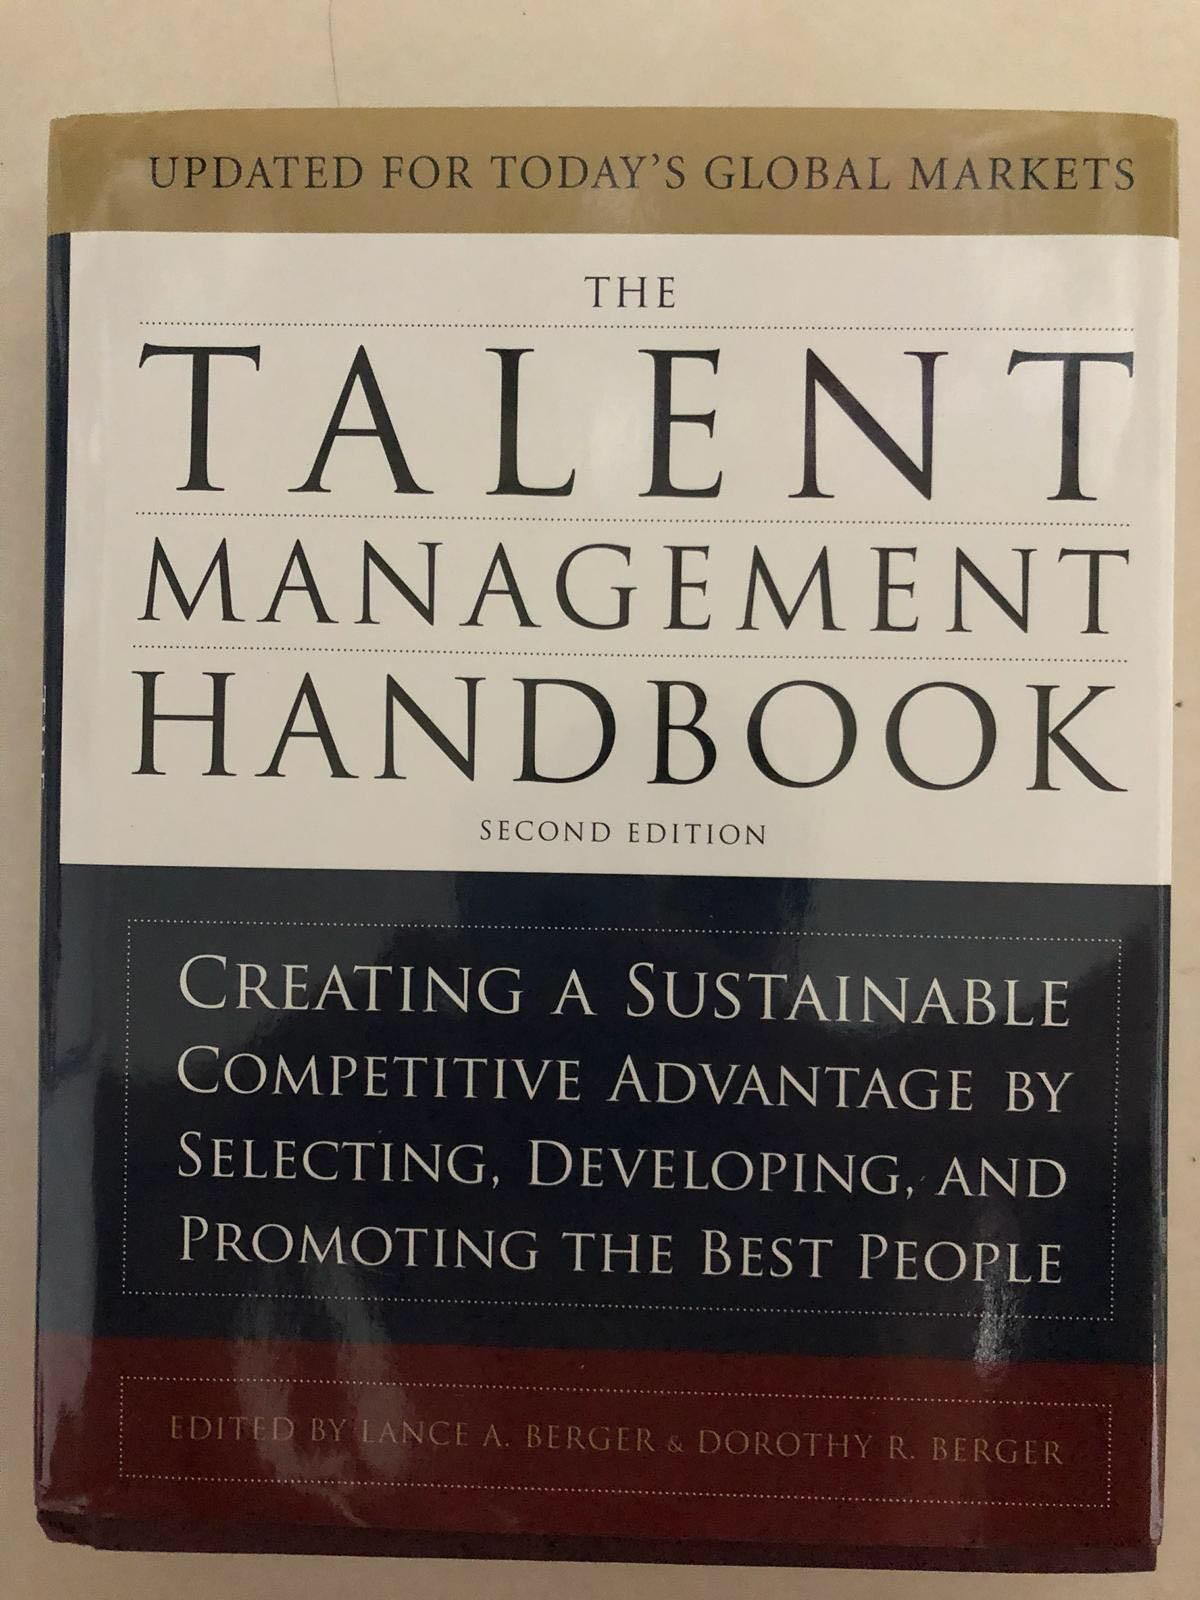 The Talent Management Handbook - second edition, Books & Stationery,  Textbooks, Professional Studies on Carousell